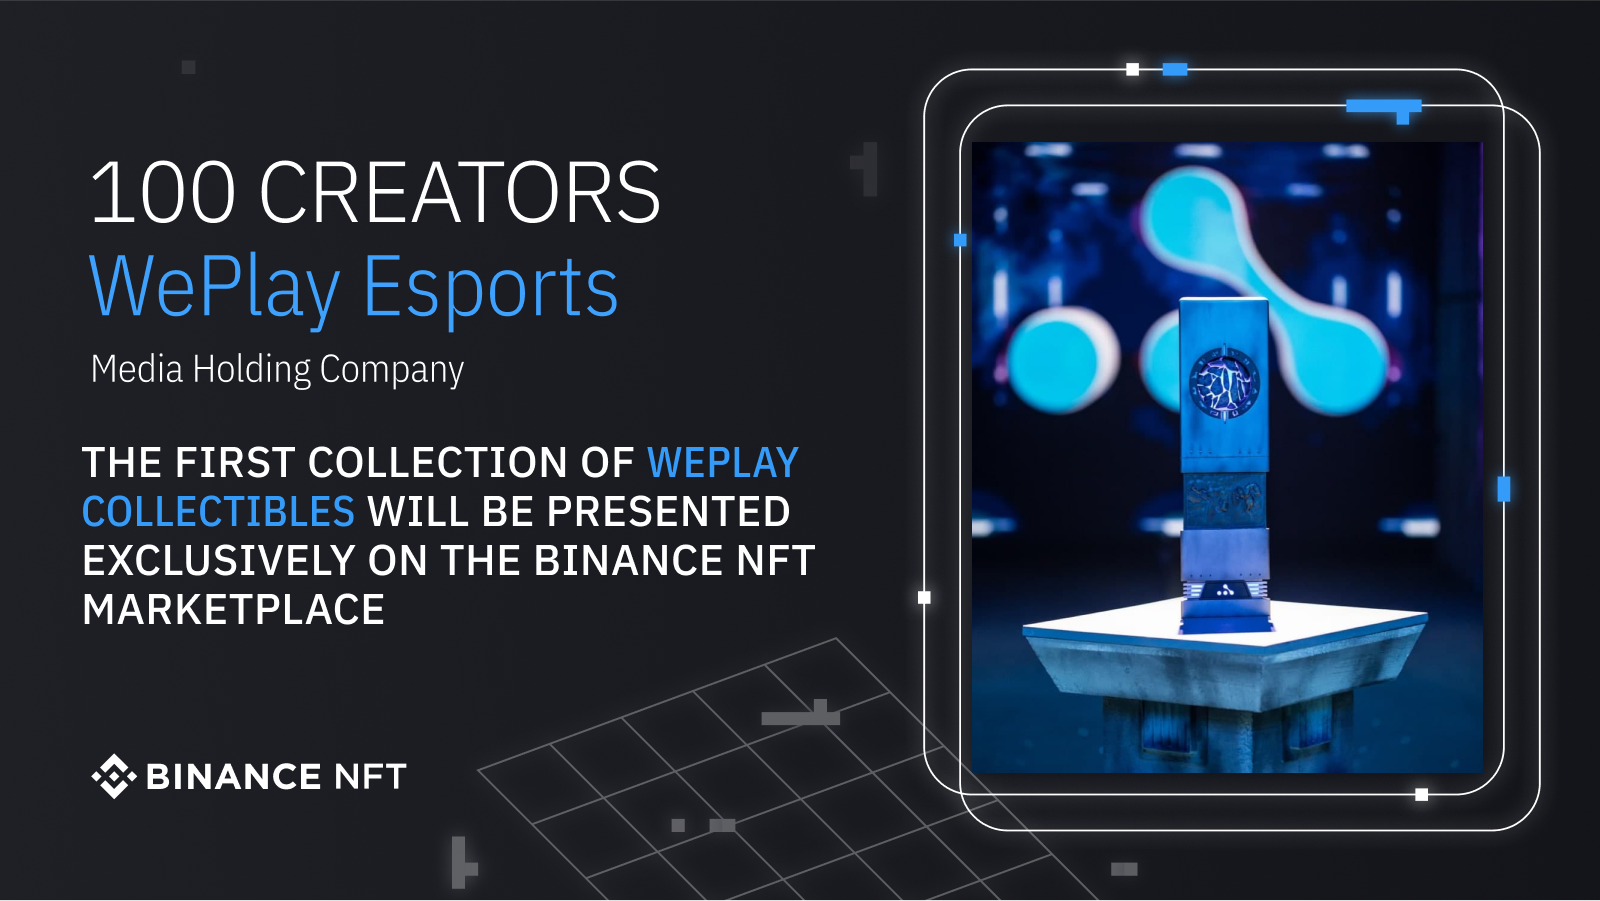 The first collection of WePlay Collectibles will be presented exclusively on the Binance NFT marketplace. Image: Binance NFT